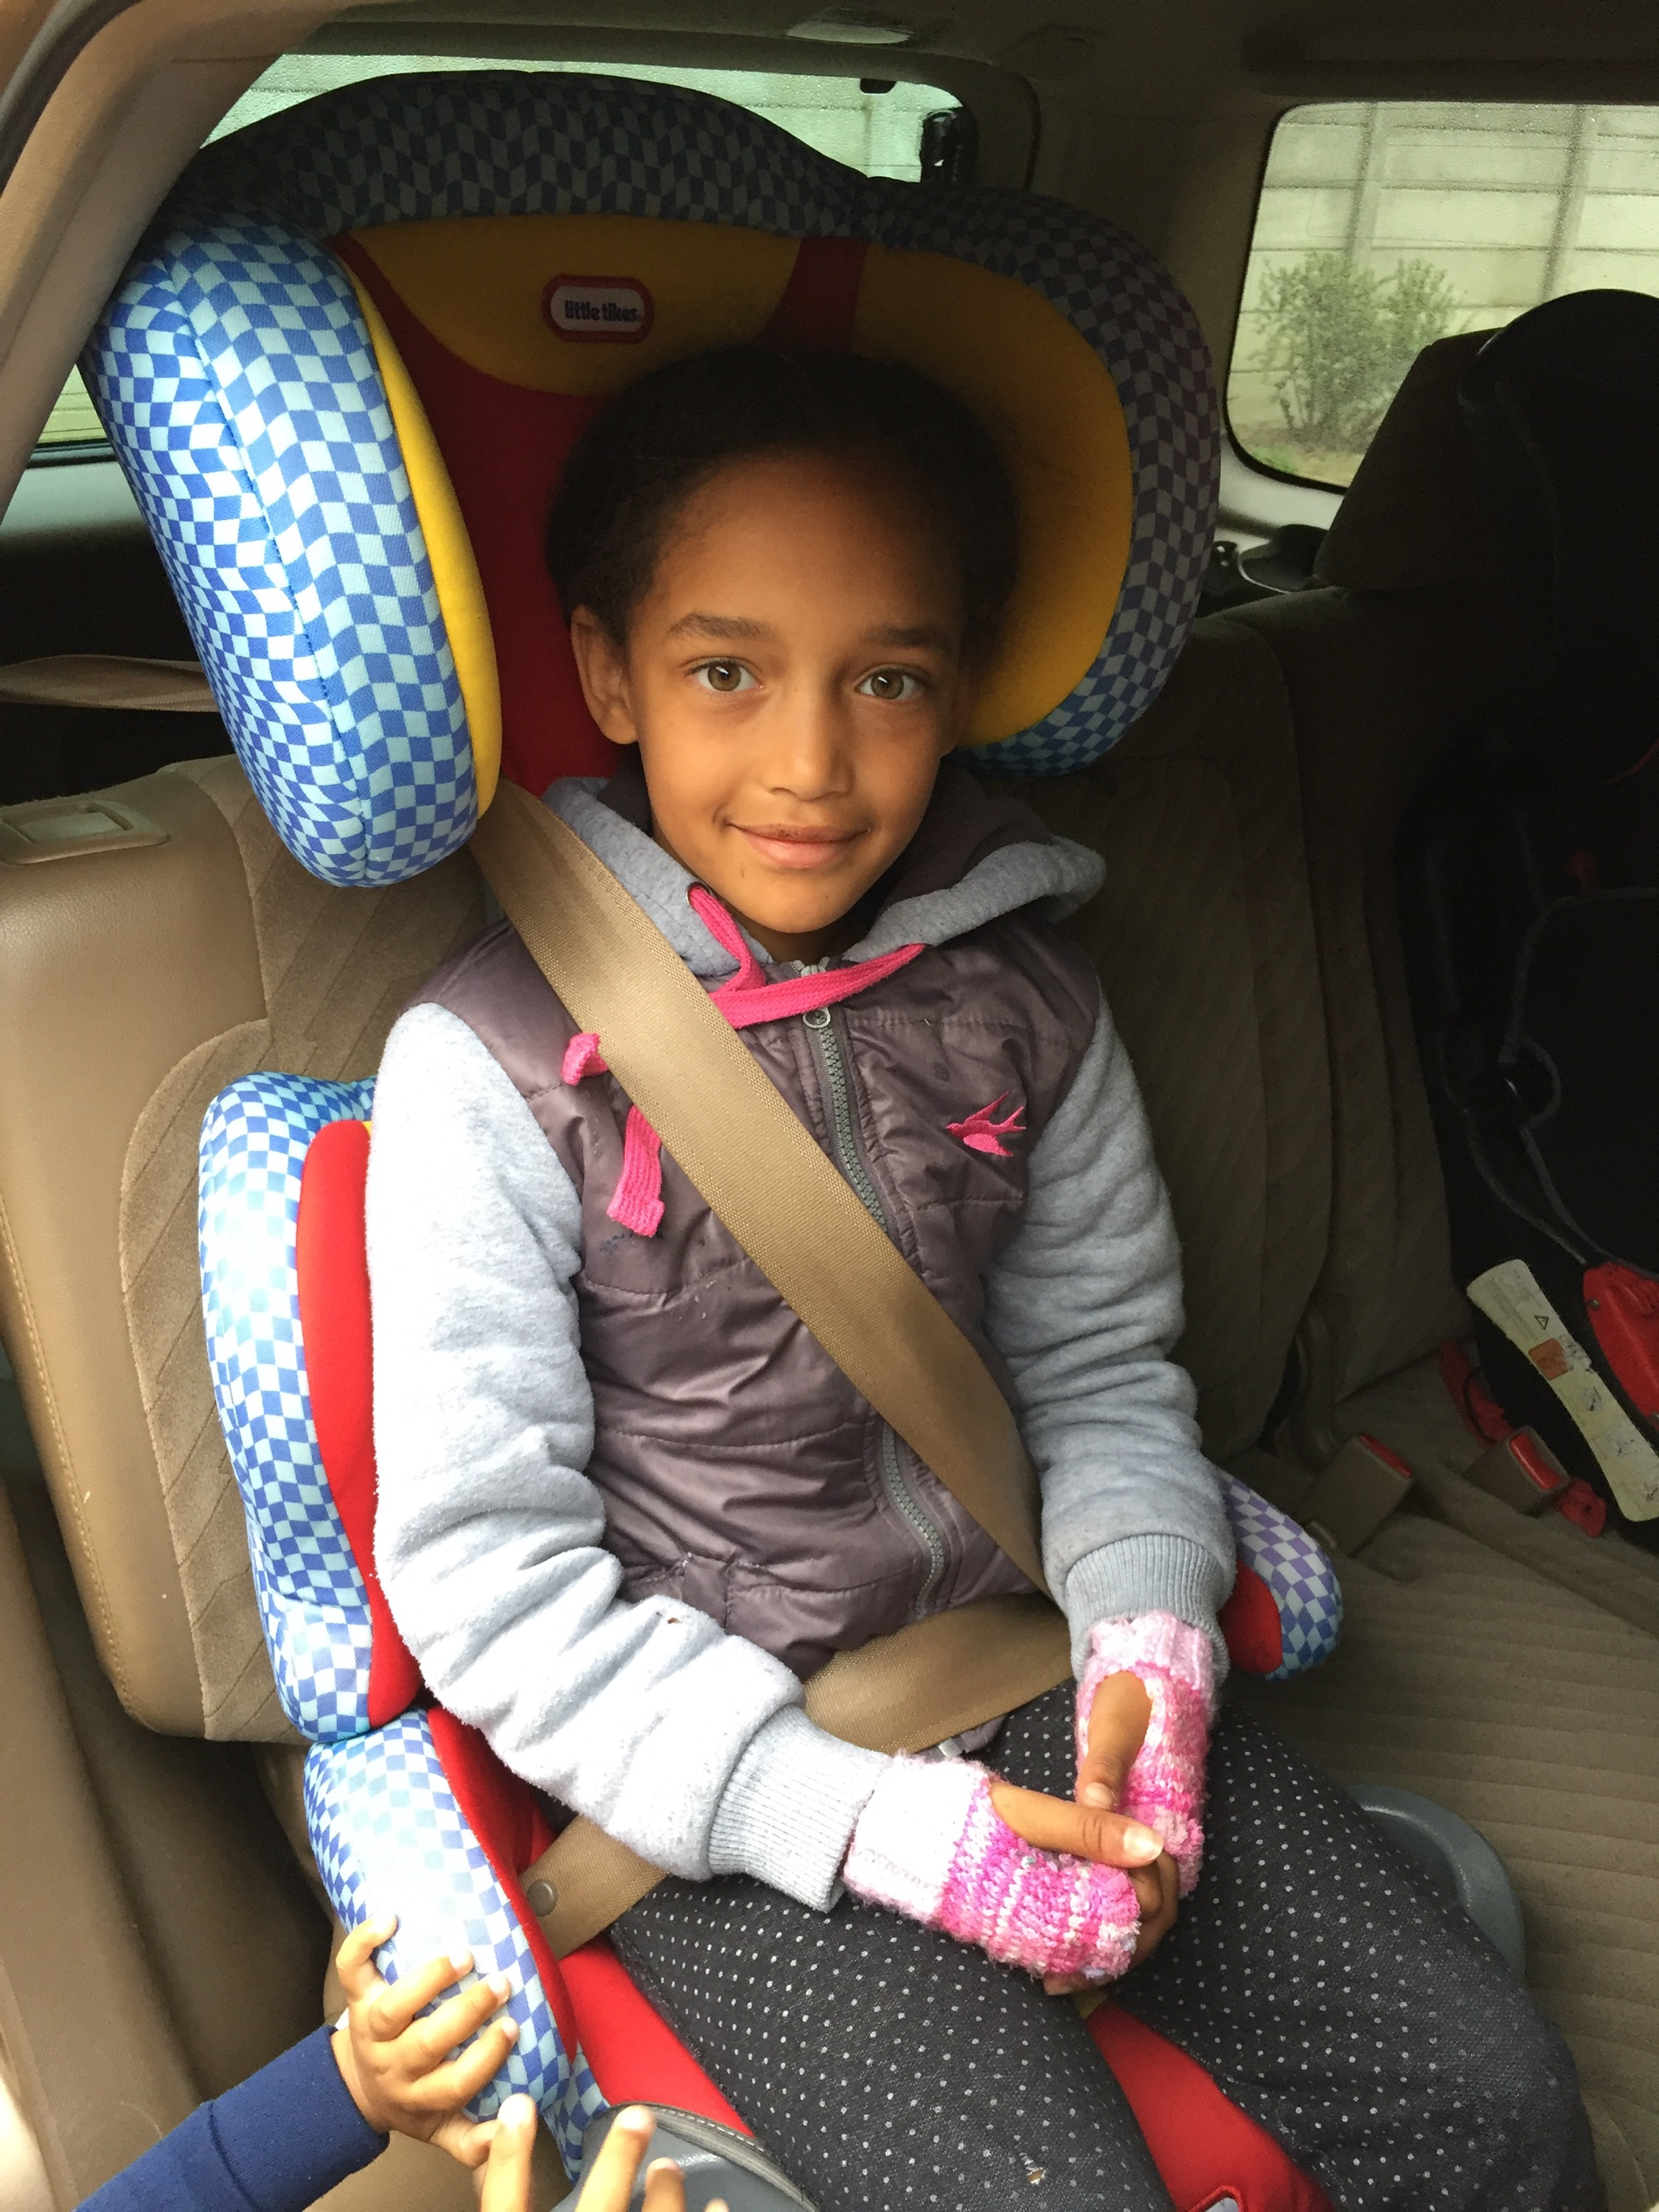 Should I Get A New Car Seat After An Accident